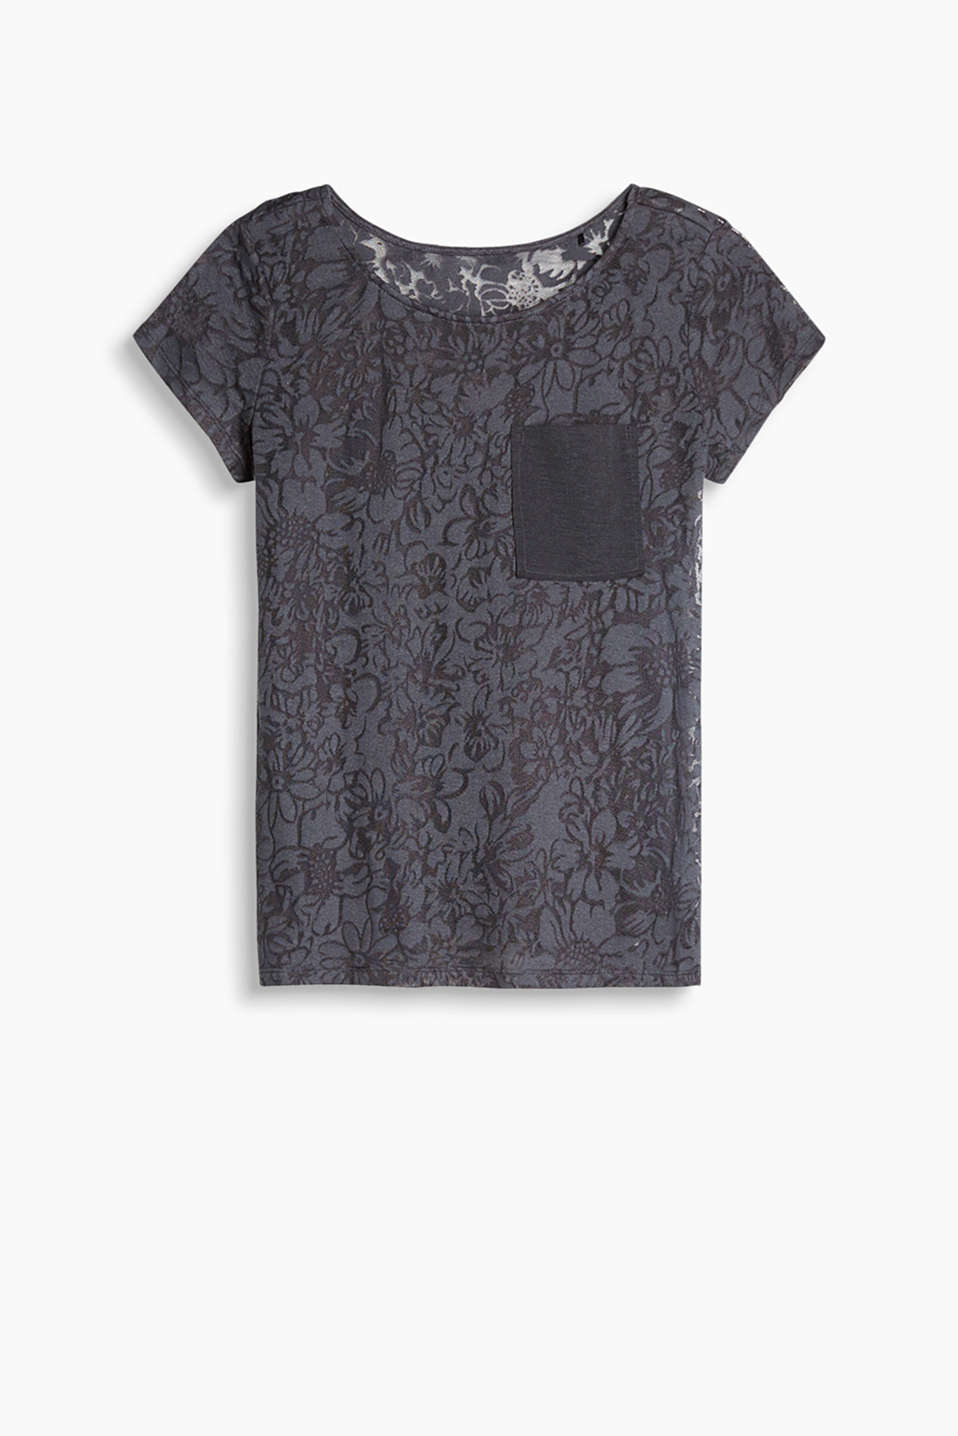 2-in-1: floral lace T-shirt with an inner top in a perfectly coordinating colour